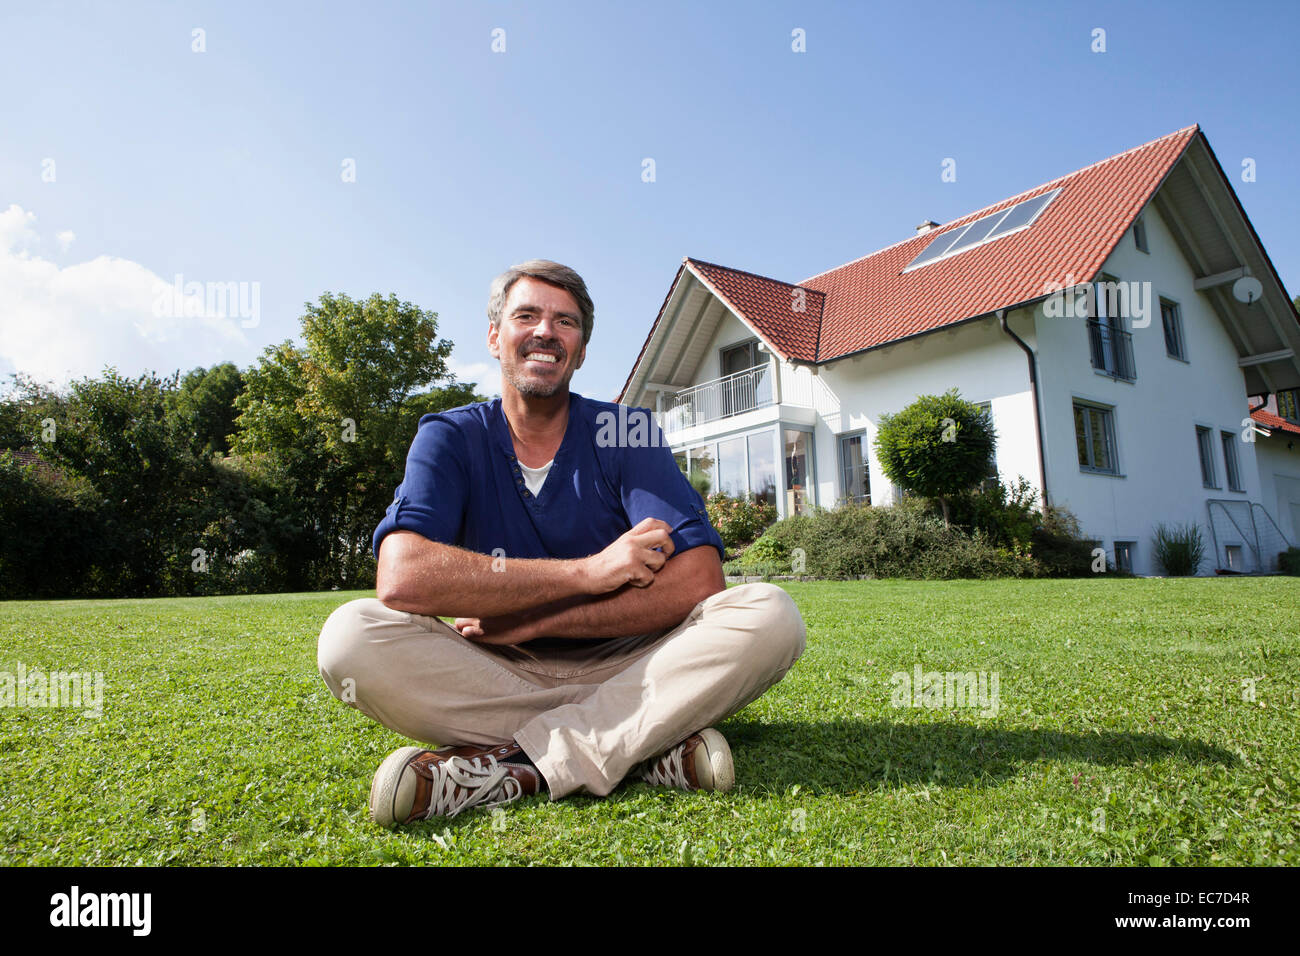 Smiling man sitting on lawn in garden Stock Photo